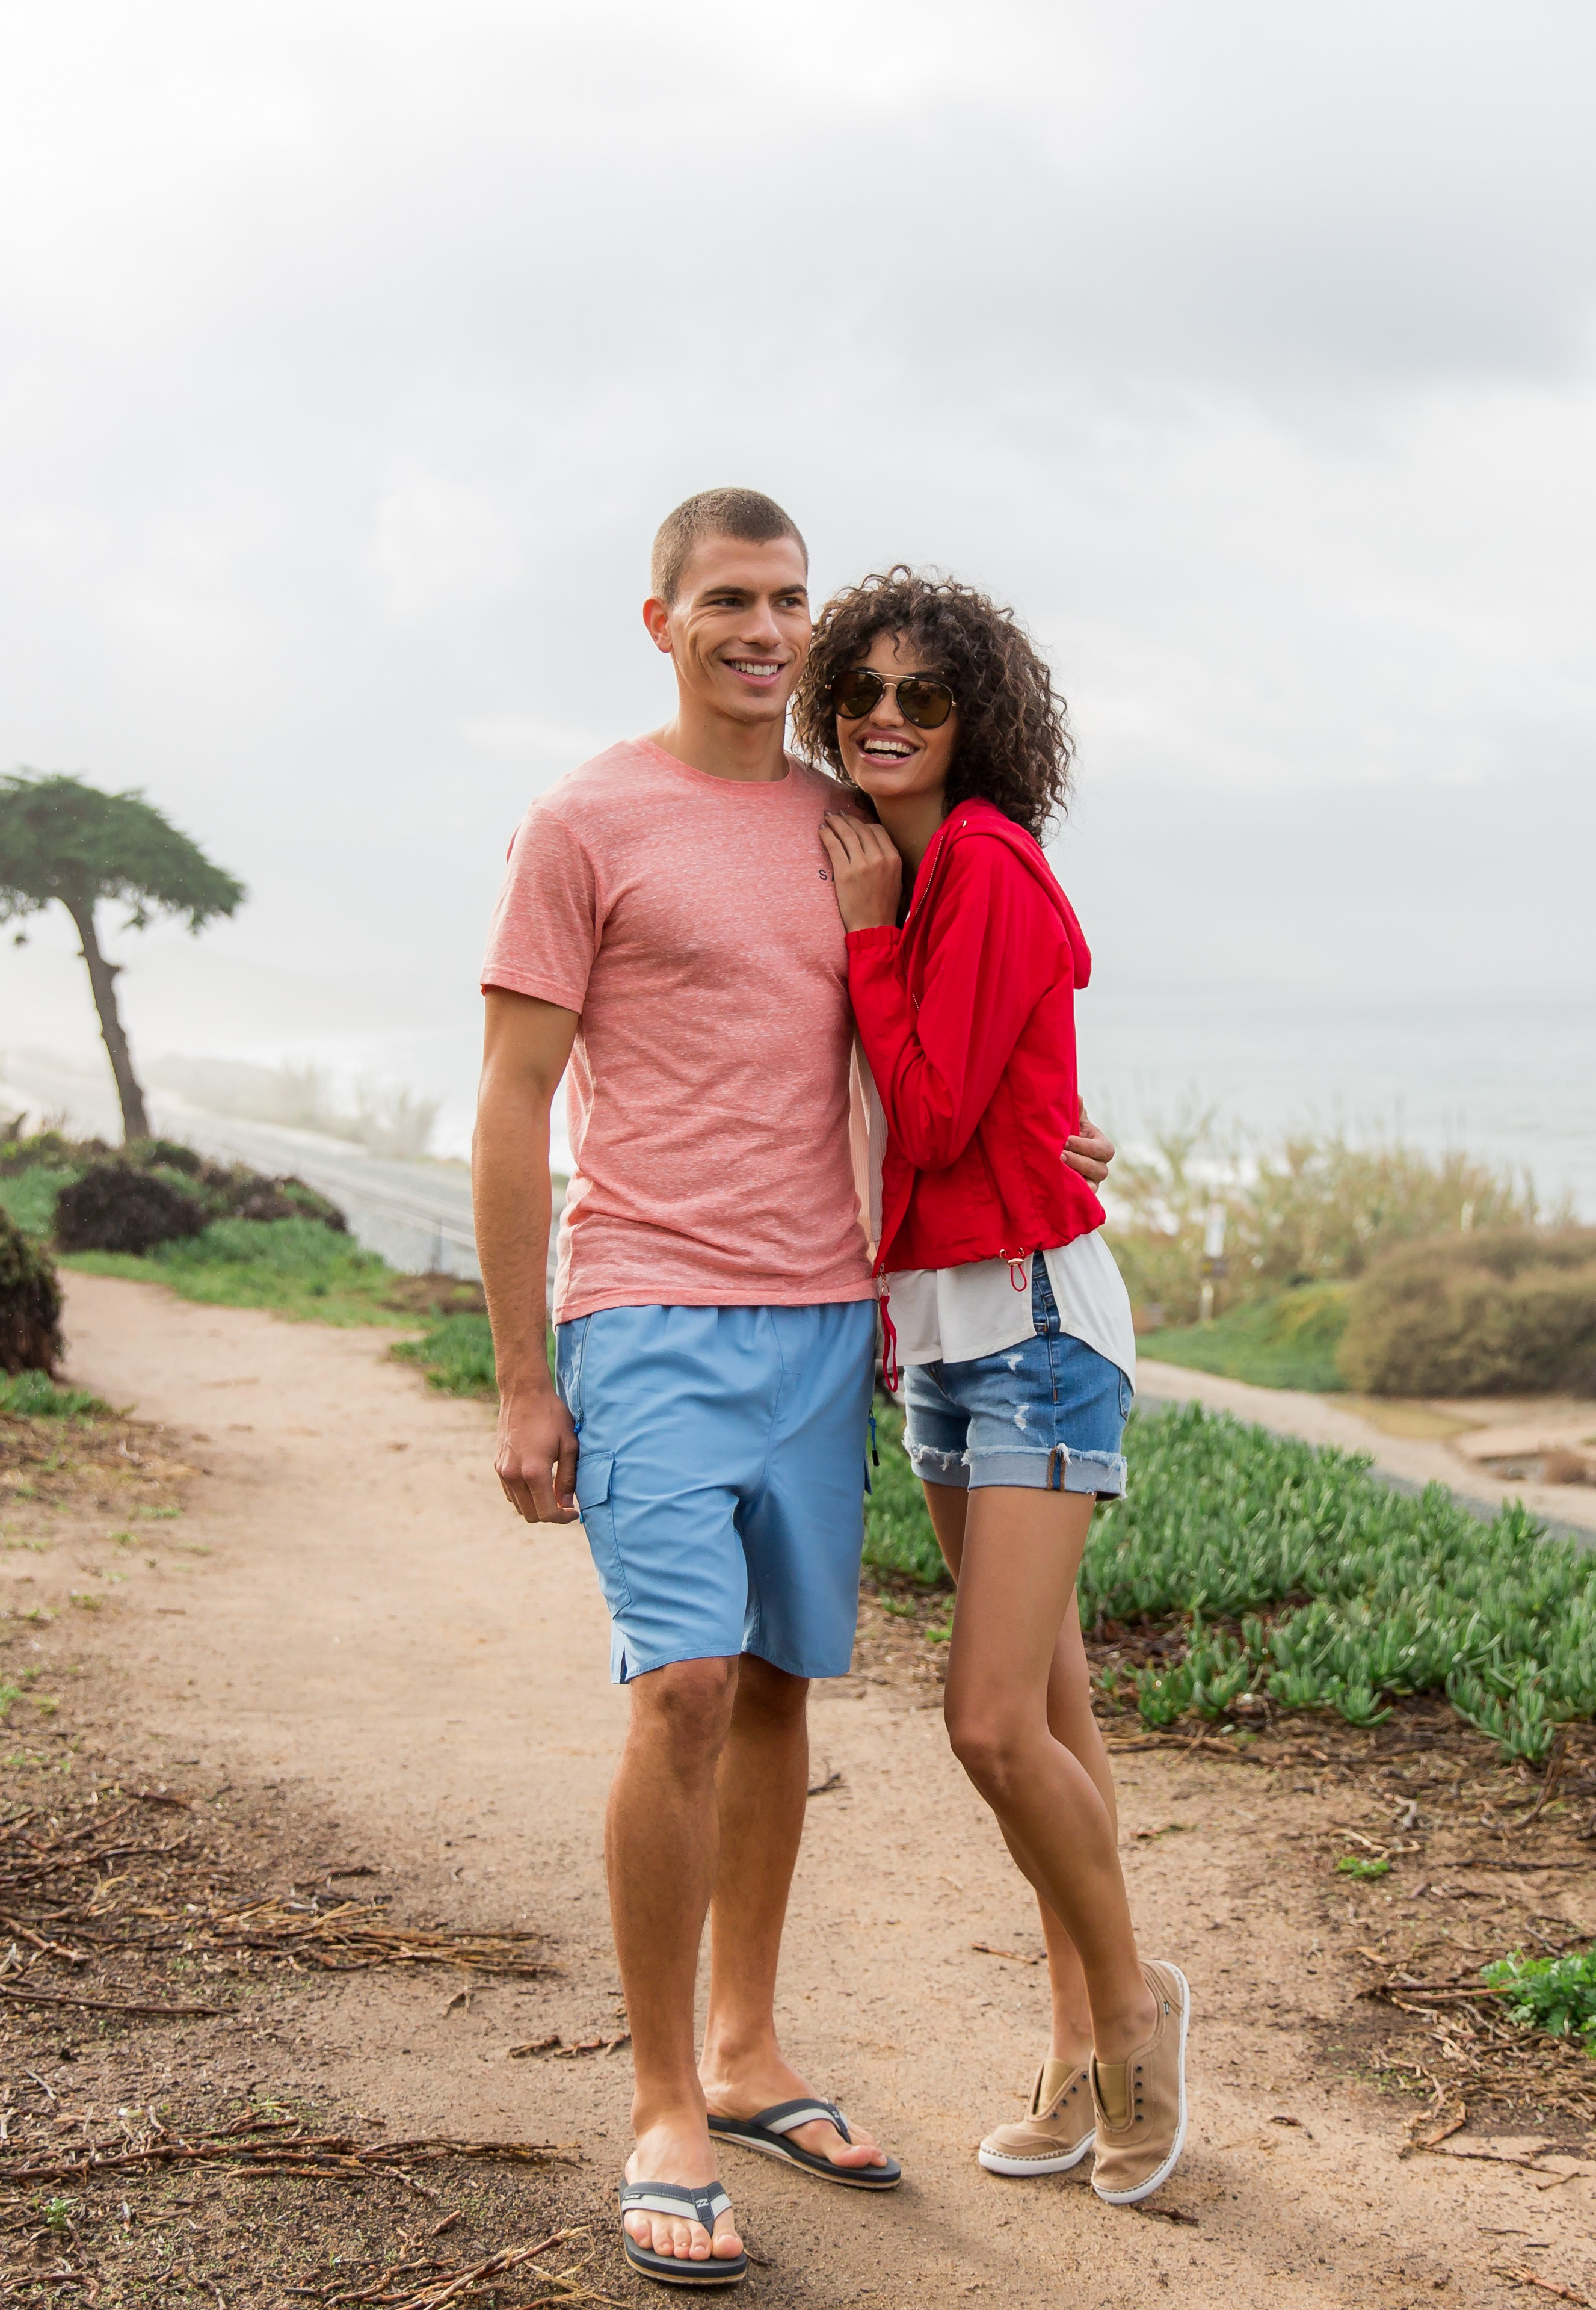 Men's and Women's Casual Vacation Outfits from Buckle featuring a Salt Life t-shirt and shorts, Kustom flip flops, white tank top, red Ashley jacket, Bridge by GLY jean shorts and Billabong tennis shoes